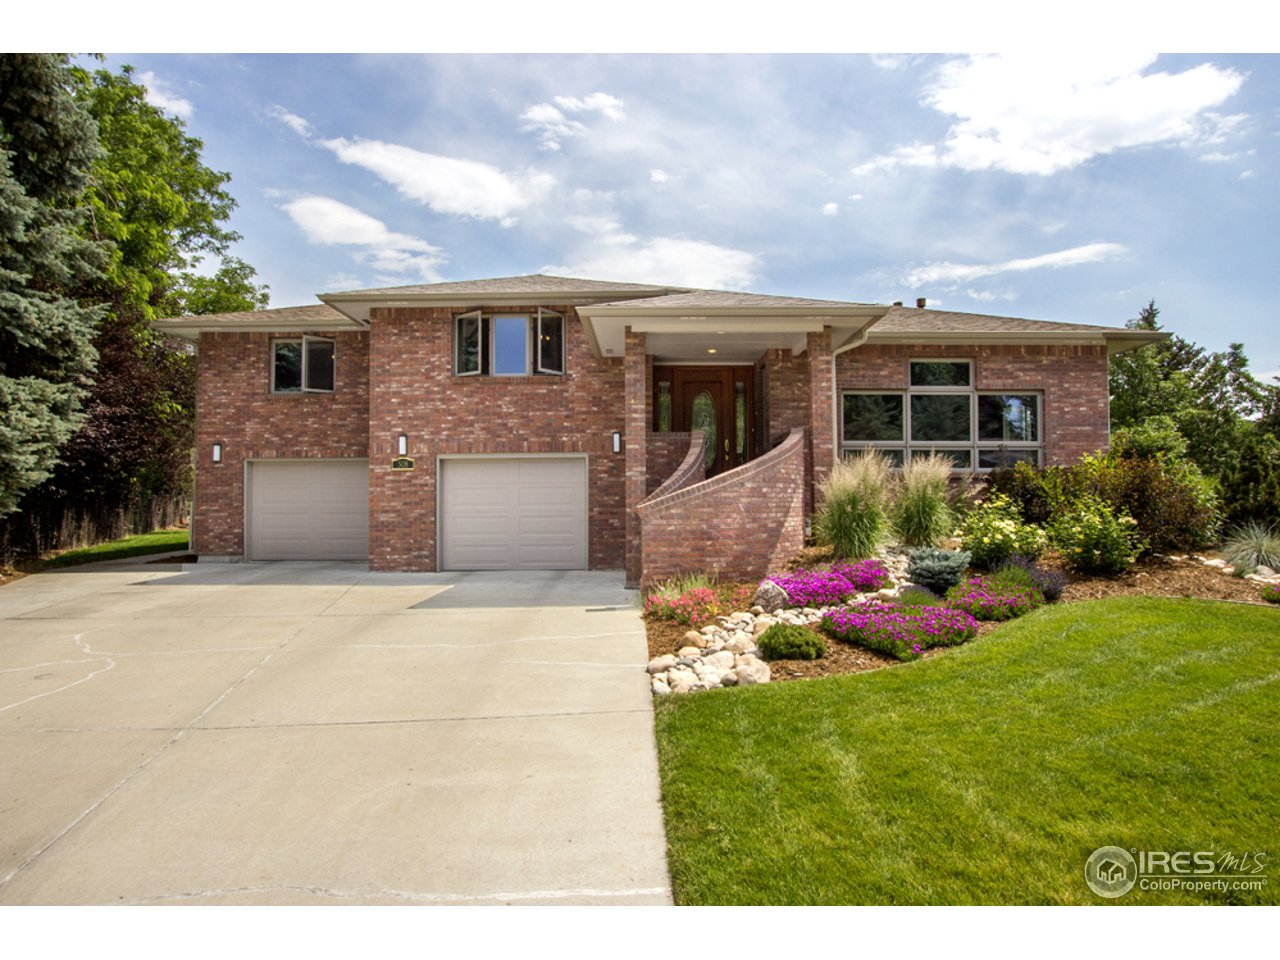 508 Parkway Ct, Fort Collins CO 80525